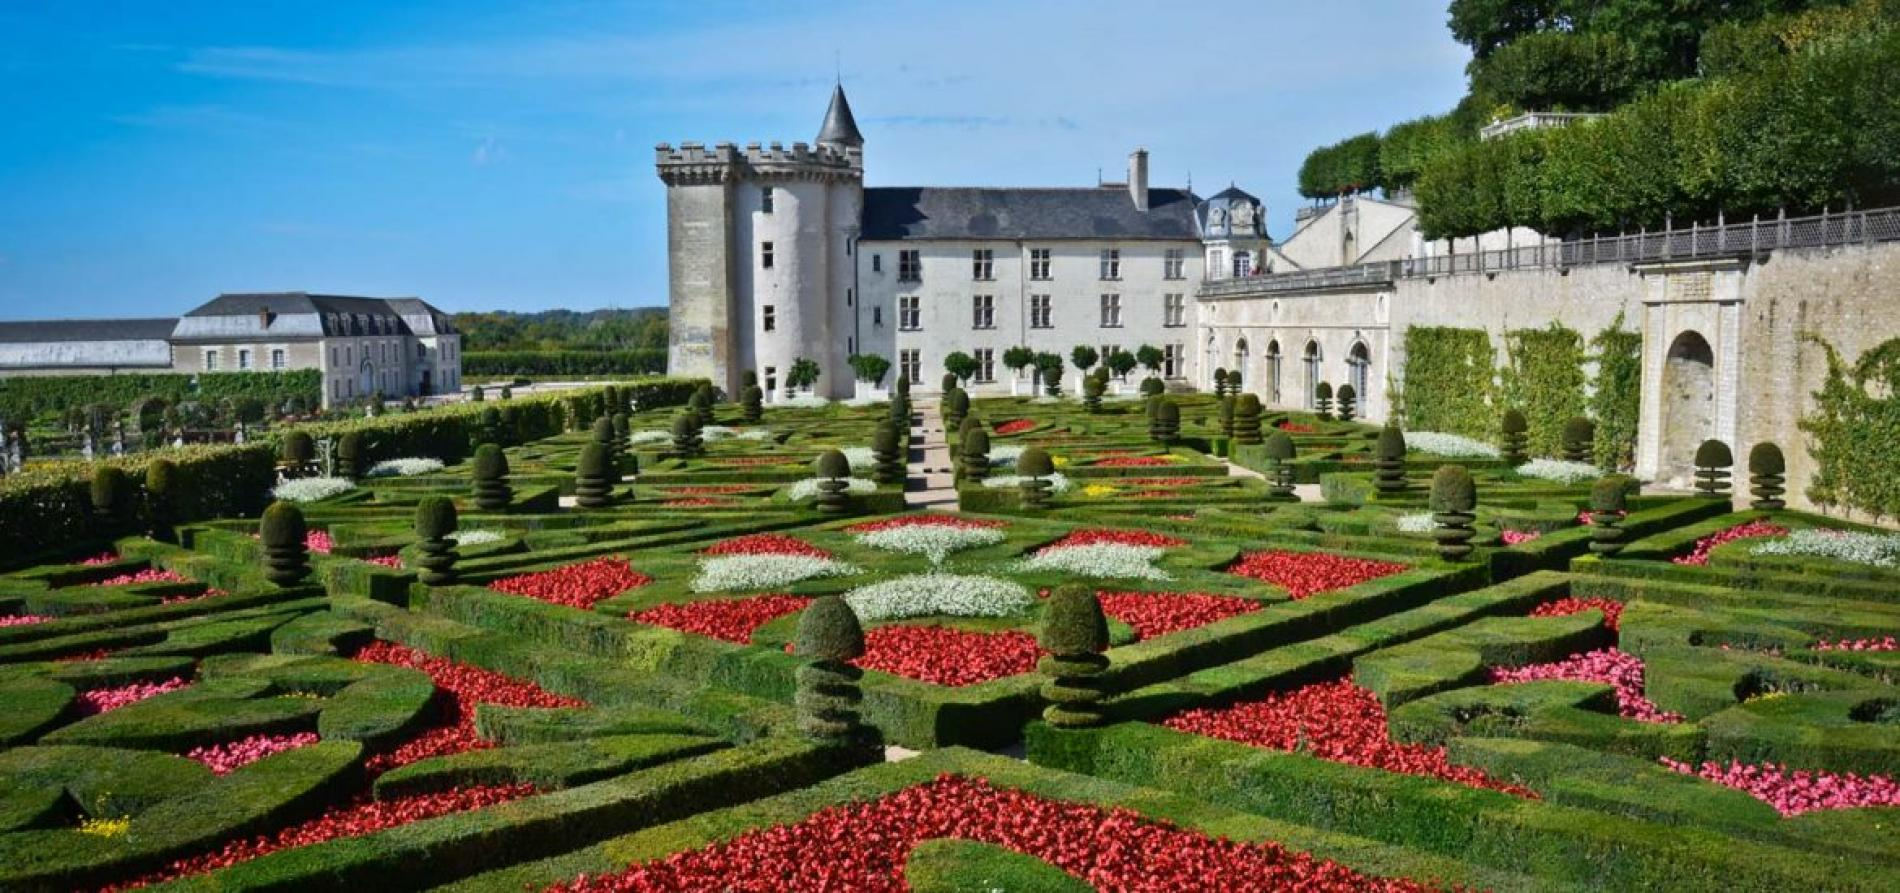 Castle of Villandry